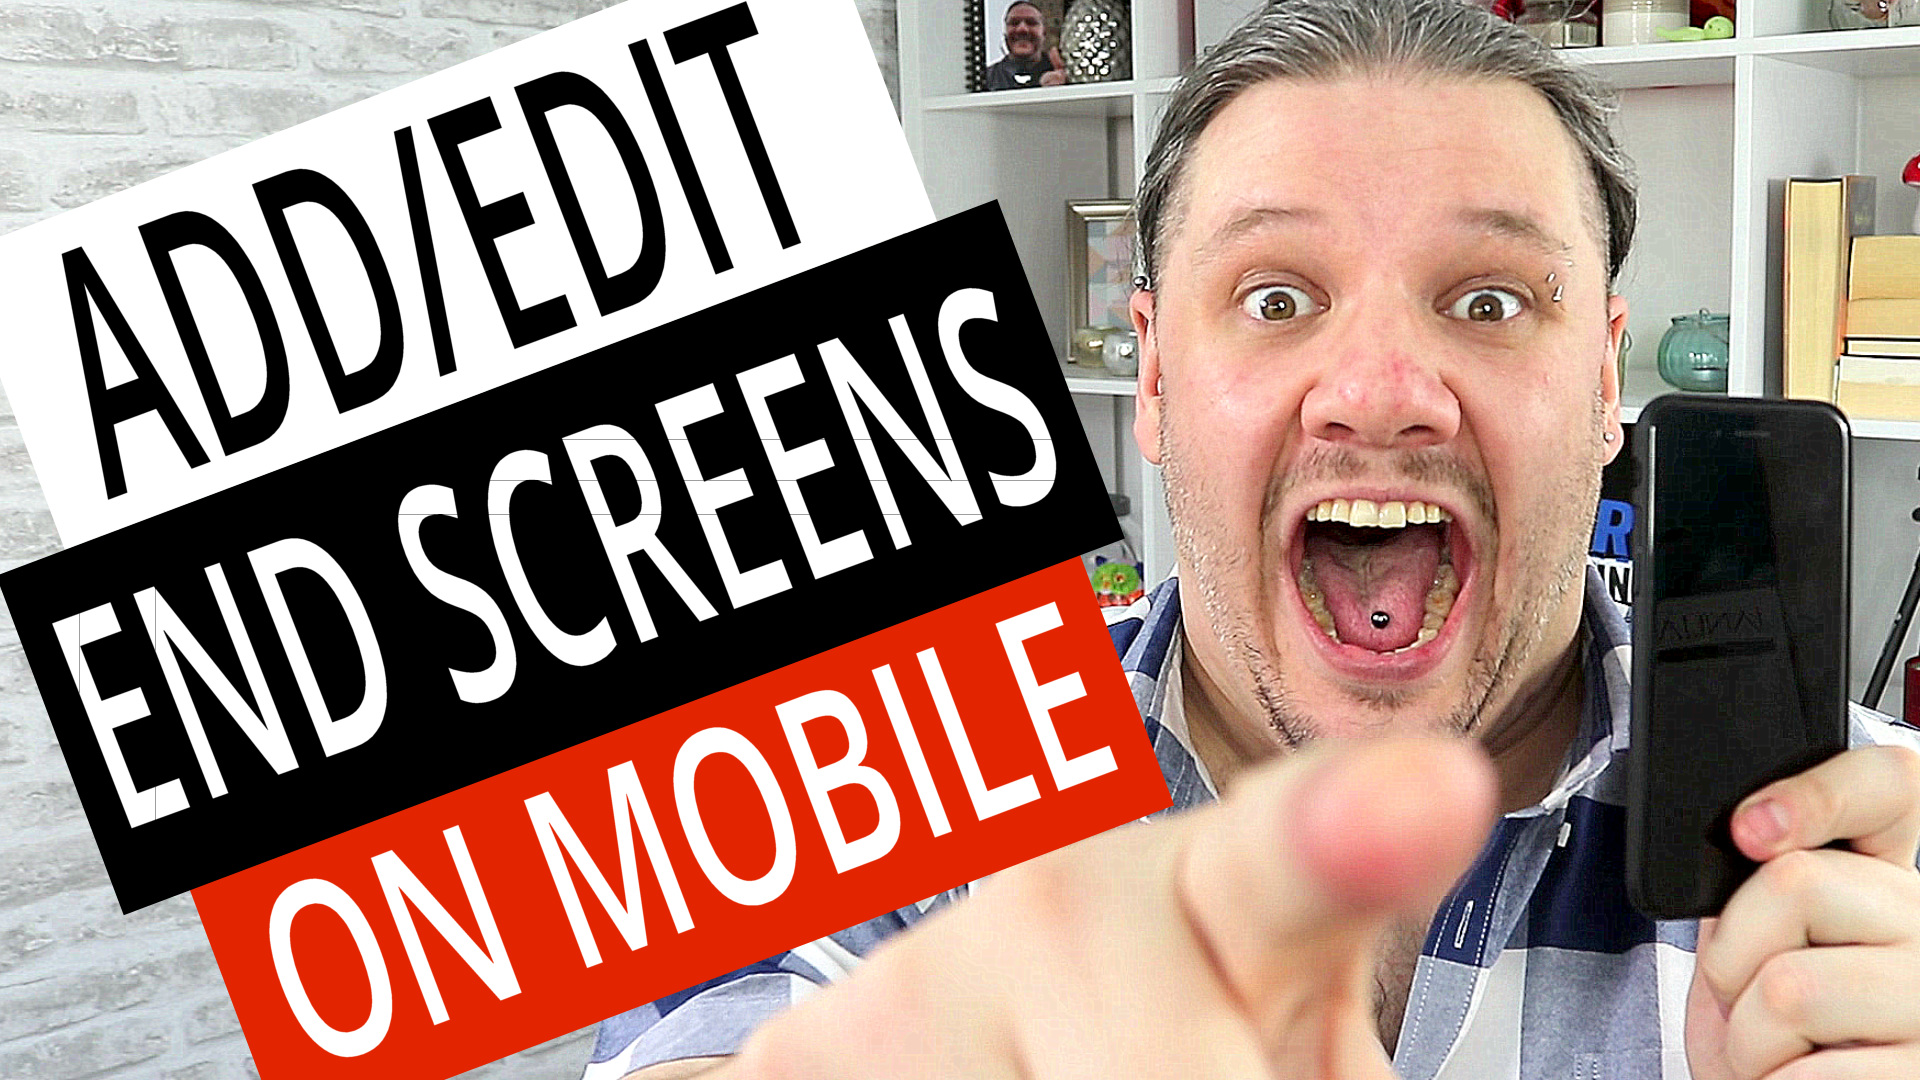 How To Add Edit End Screens to YouTube Videos on Mobile Phone (Android & iPhone), alan spicer,how to make a youtube end card,how to make youtube end screen for your videos,end screen,end card,youtube endscreen,youtube end card,youtube end screen,new end card,youtube end screens,add end cards,edit end cards,add end screens,edit end screens,edit end screens on mobile,add end screens on mobile,how to add end screens to youtube videos on mobile,how to add end screen on mobile,end screen on mobile,how to add end screen with android,endscreen